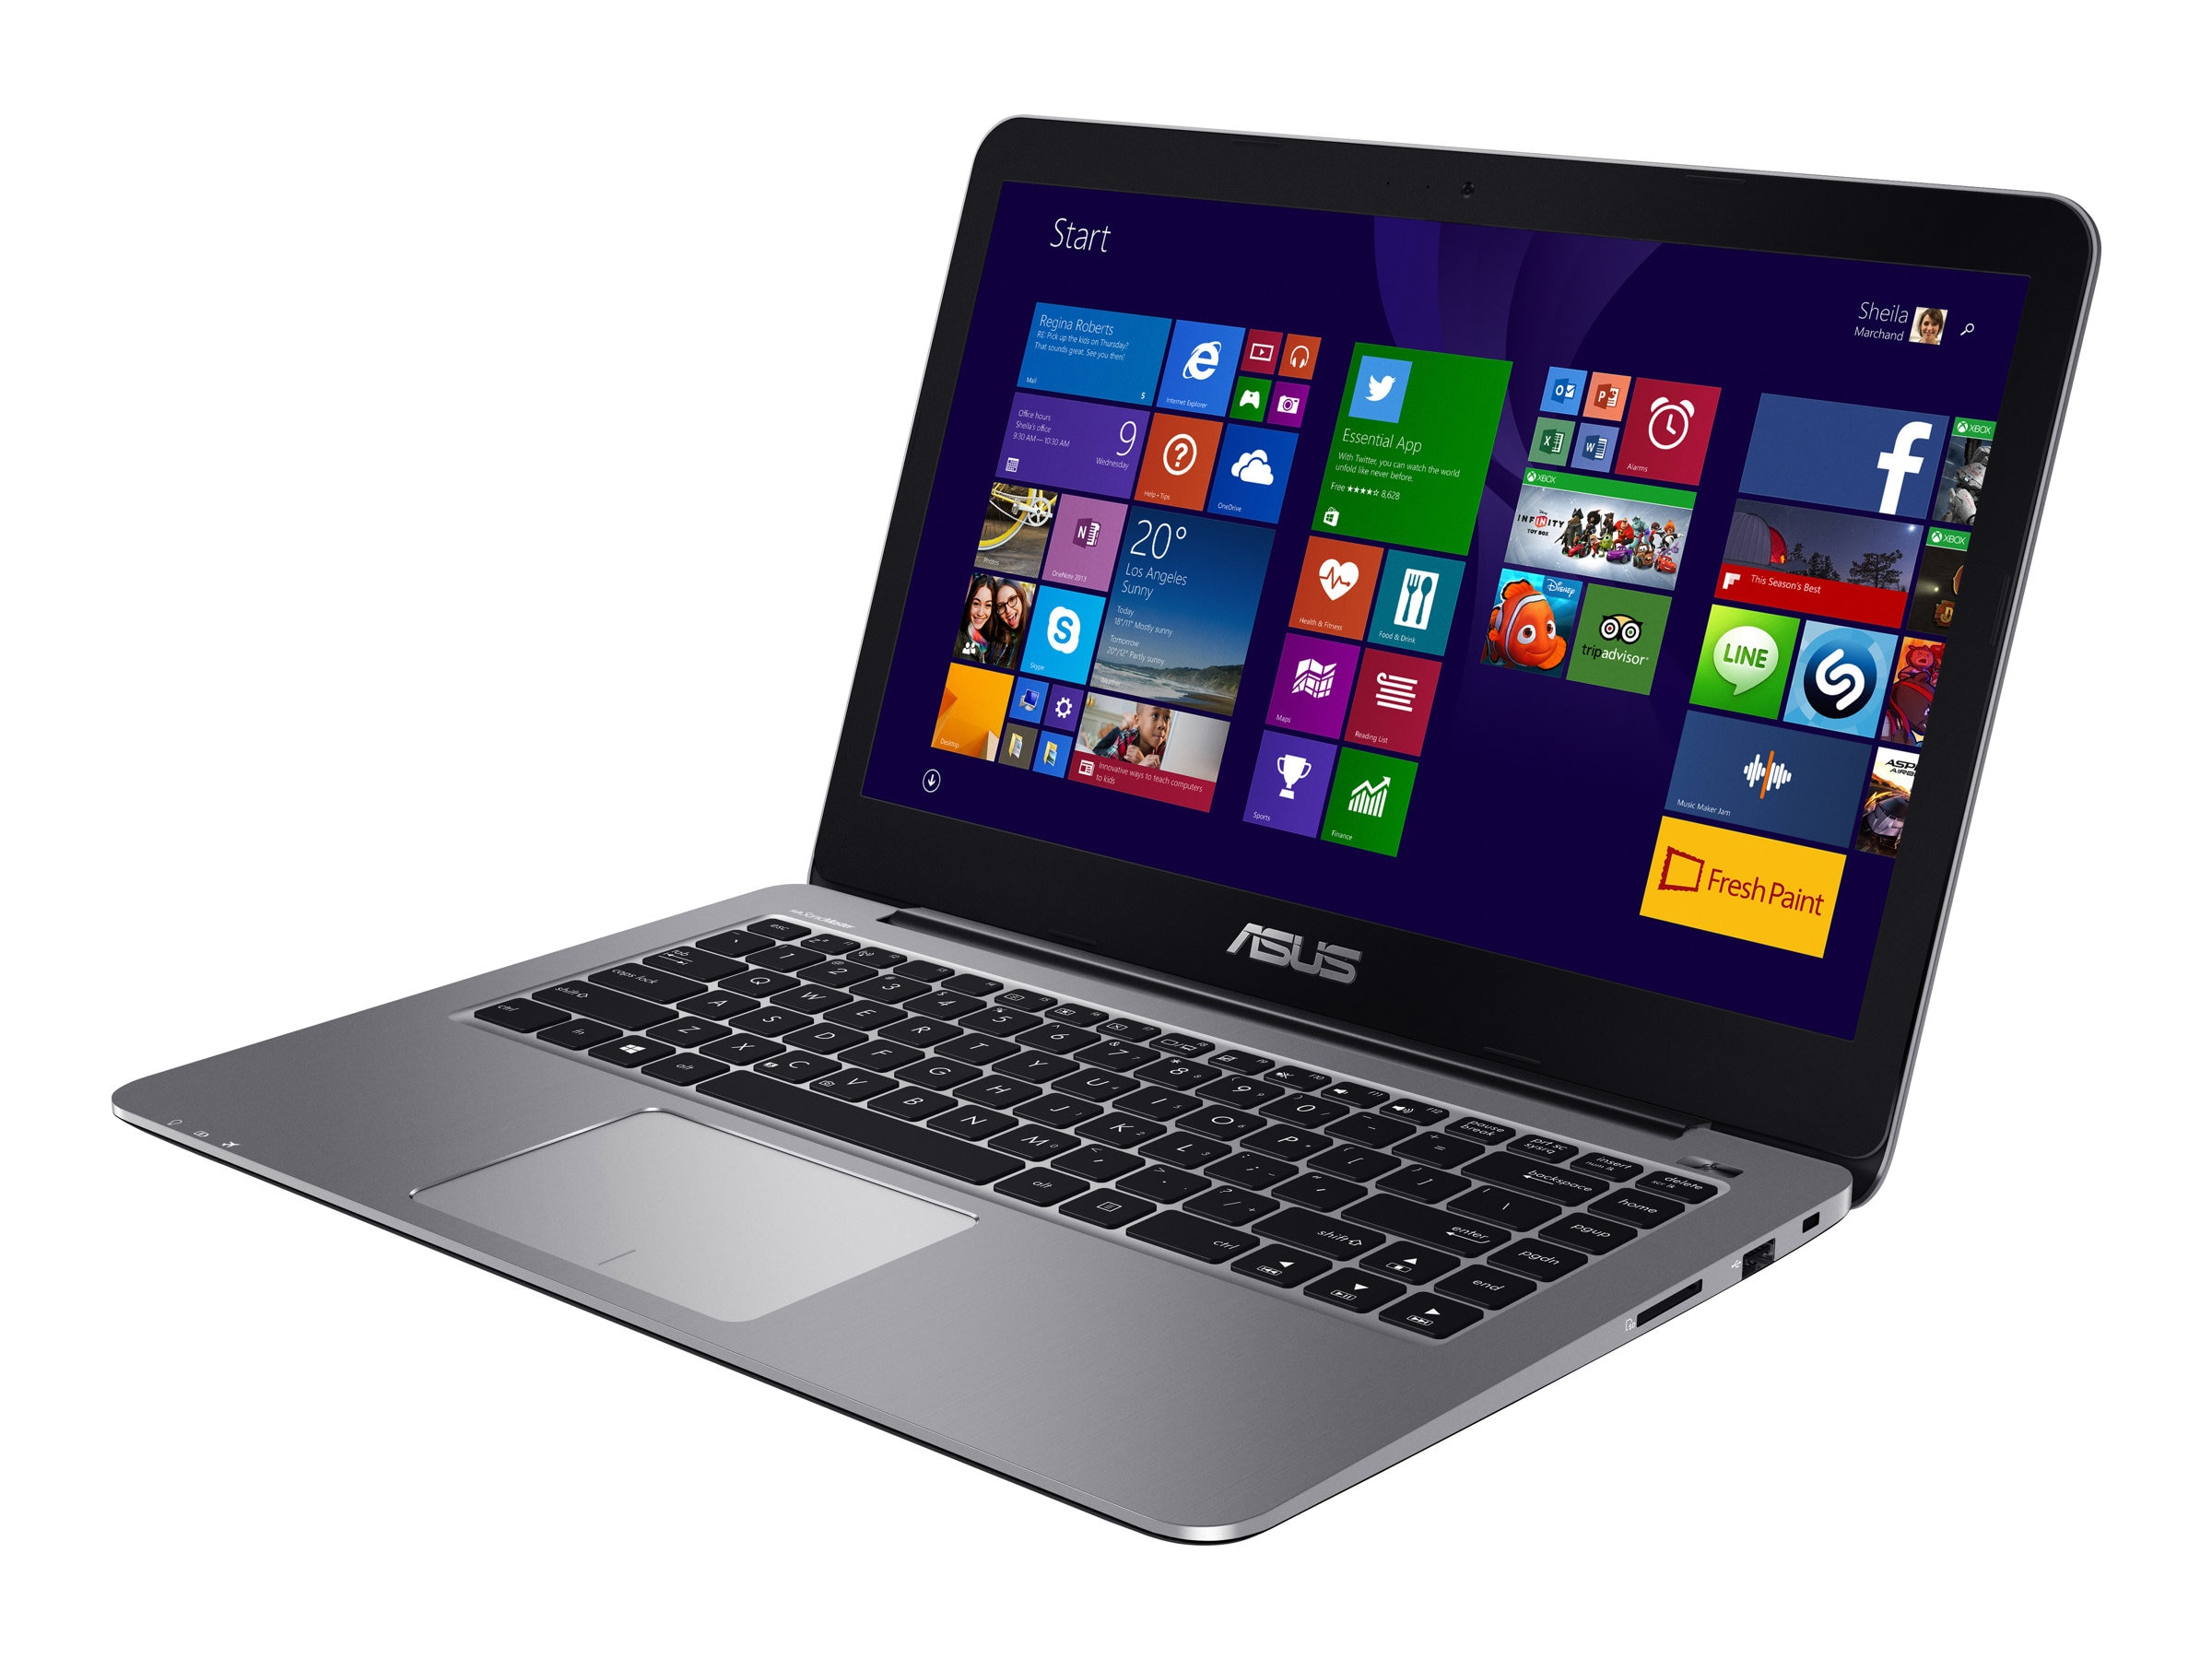 Asus Notebook PC Celeron N3700 1.6GHz 4GB 128GB 14 FHD